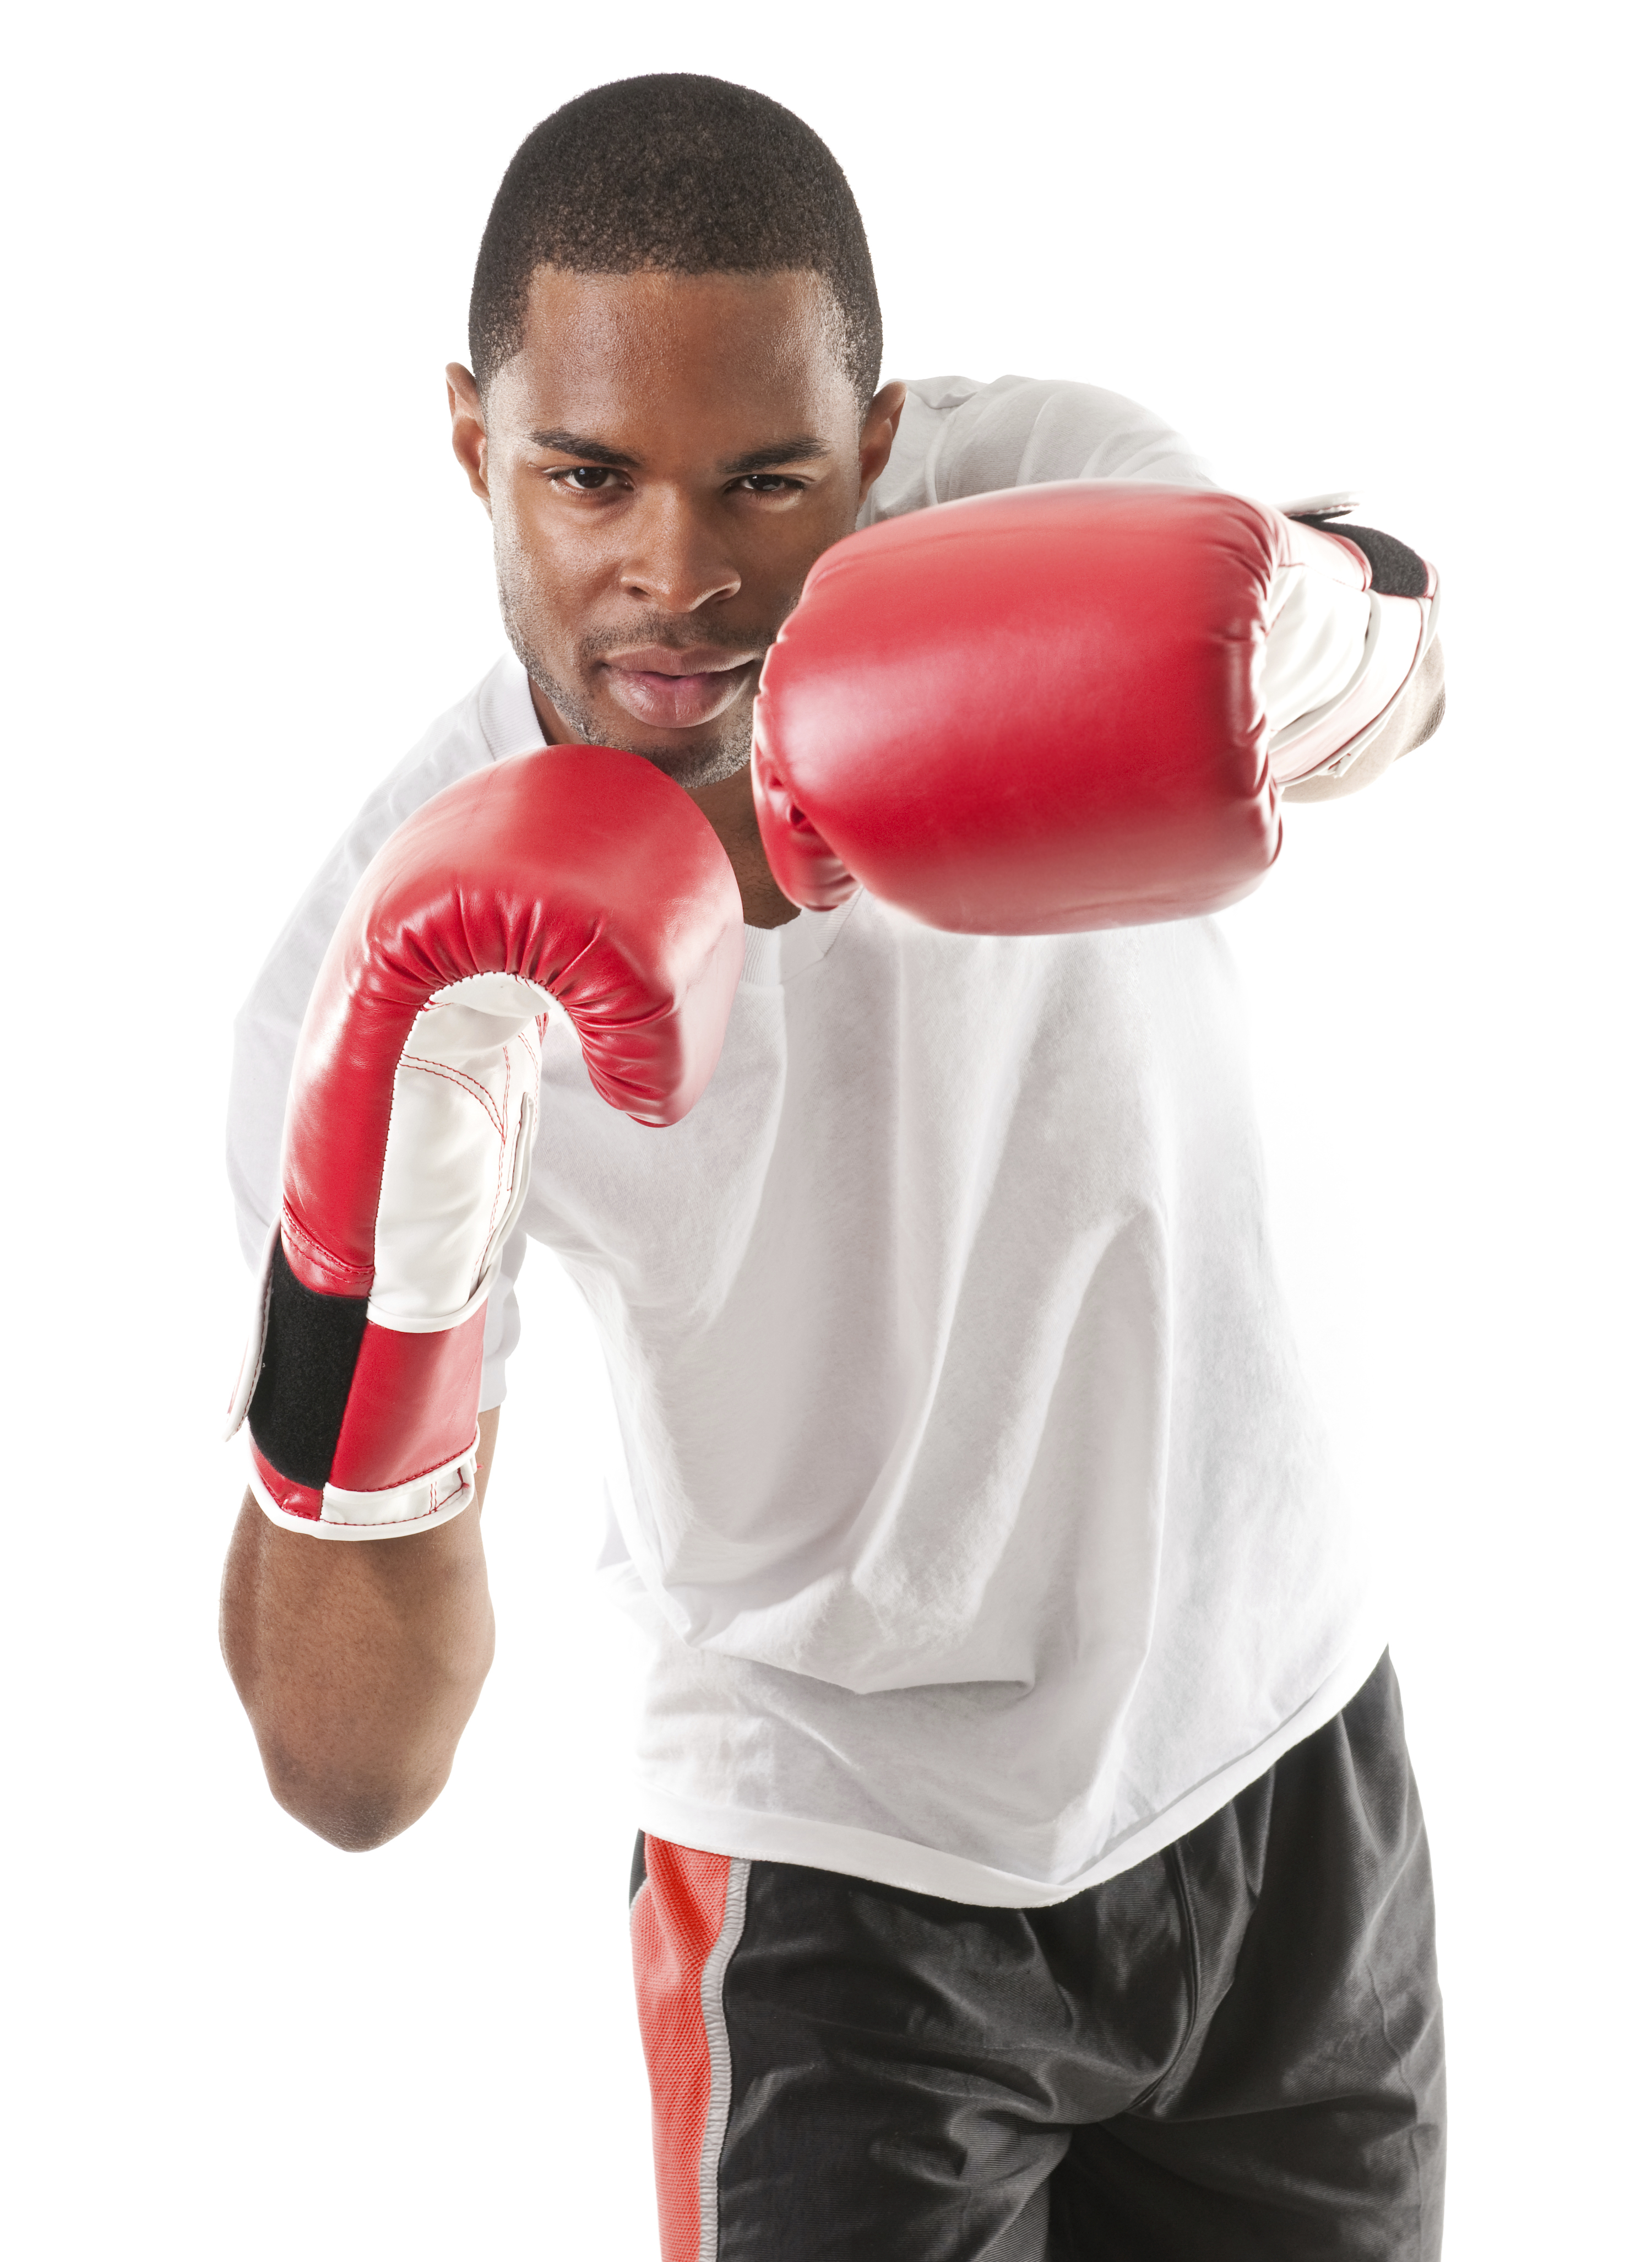 Leisure centre hooked by new boxing workouts / The Digital ...